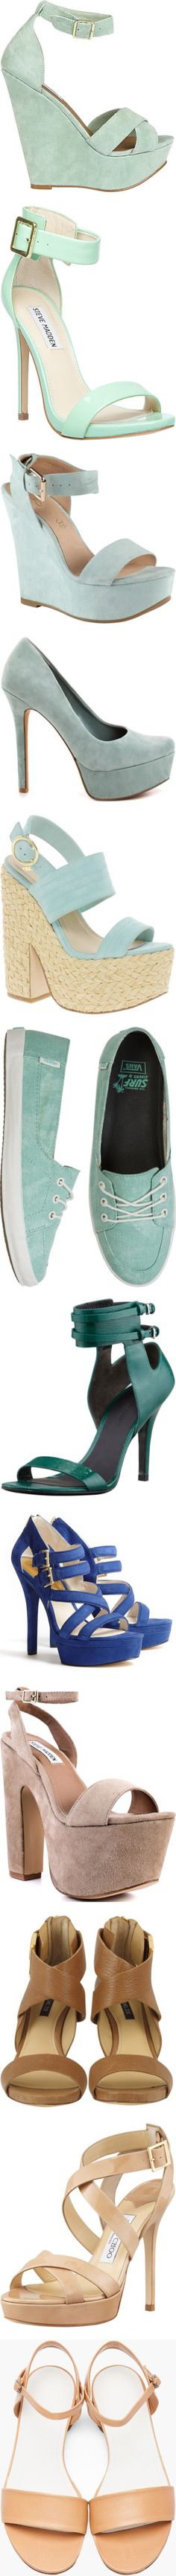 """shoes 3"" by helen-enjoy ❤ liked on Polyvore"